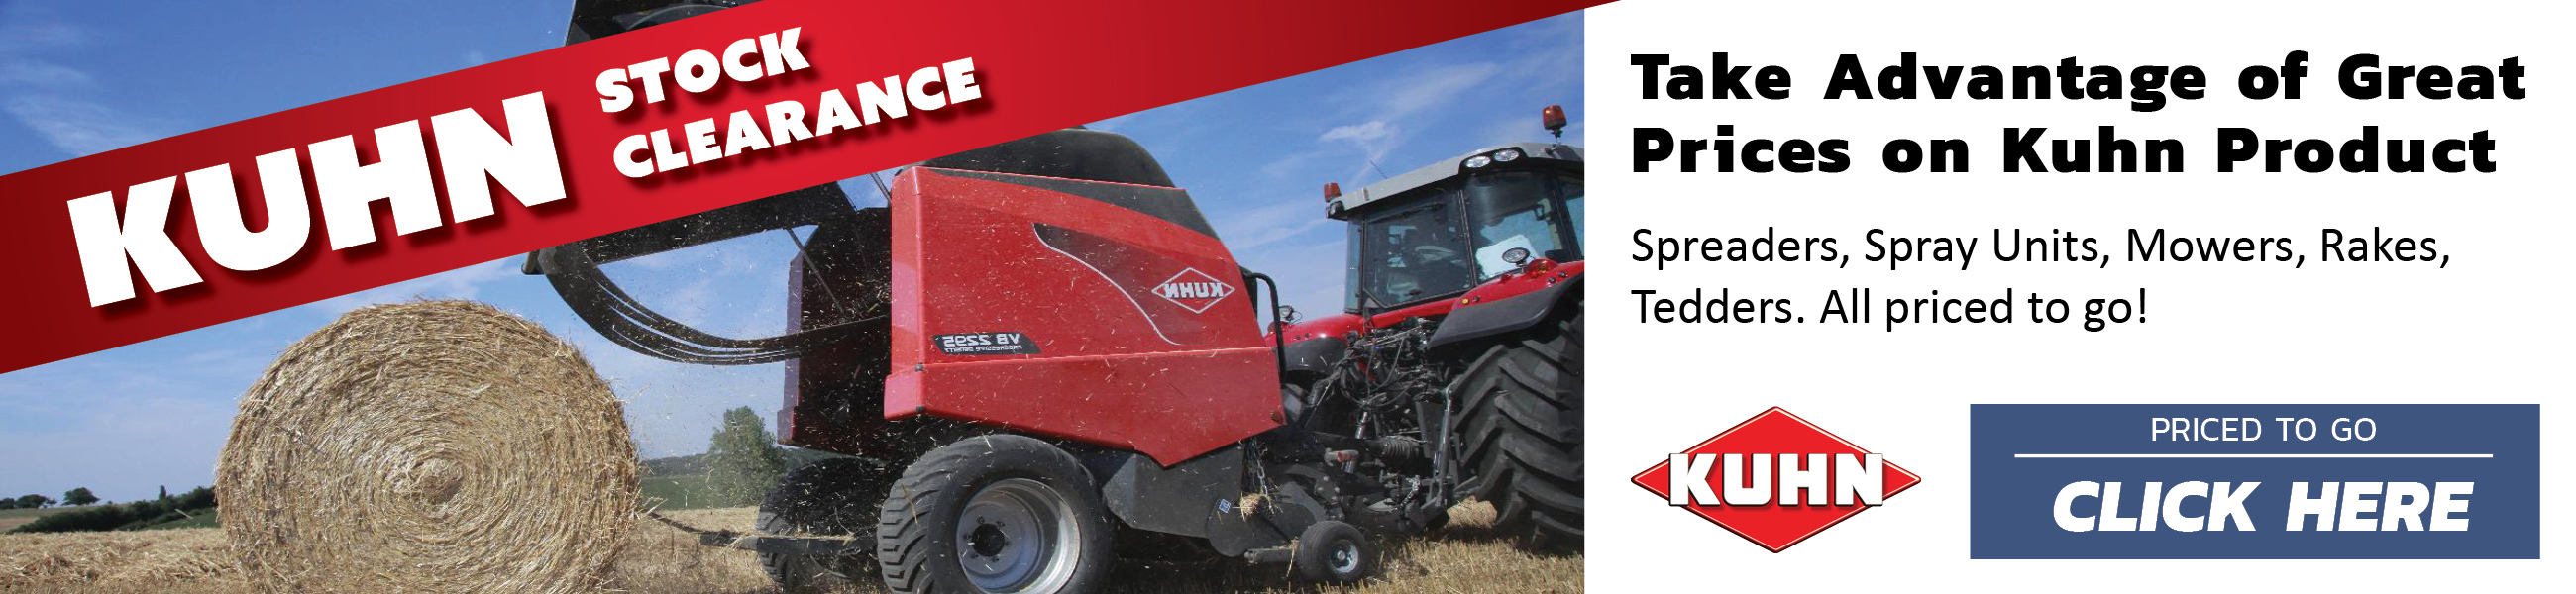 Kuhn Stock Clearance